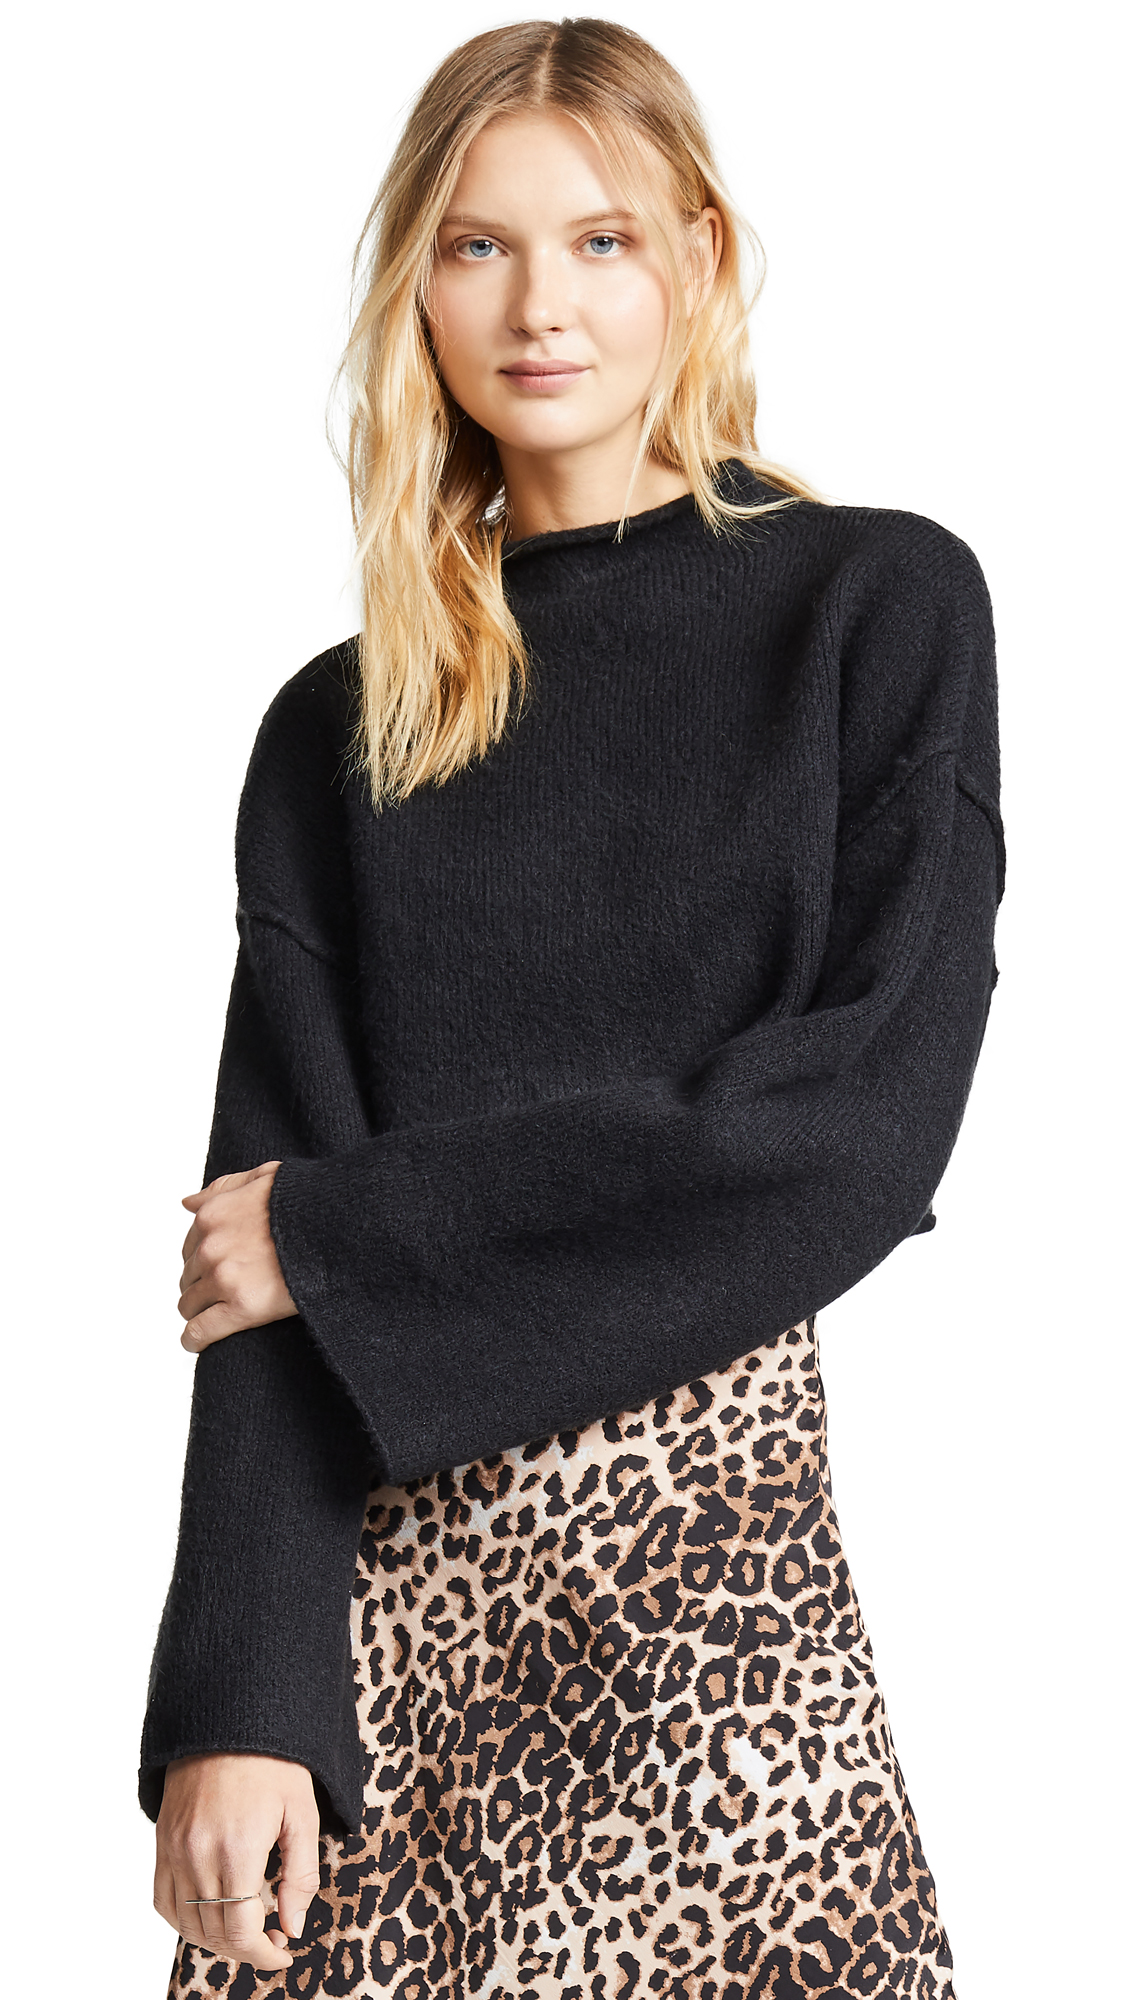 Free People Lost In A Forest Sweater - Black